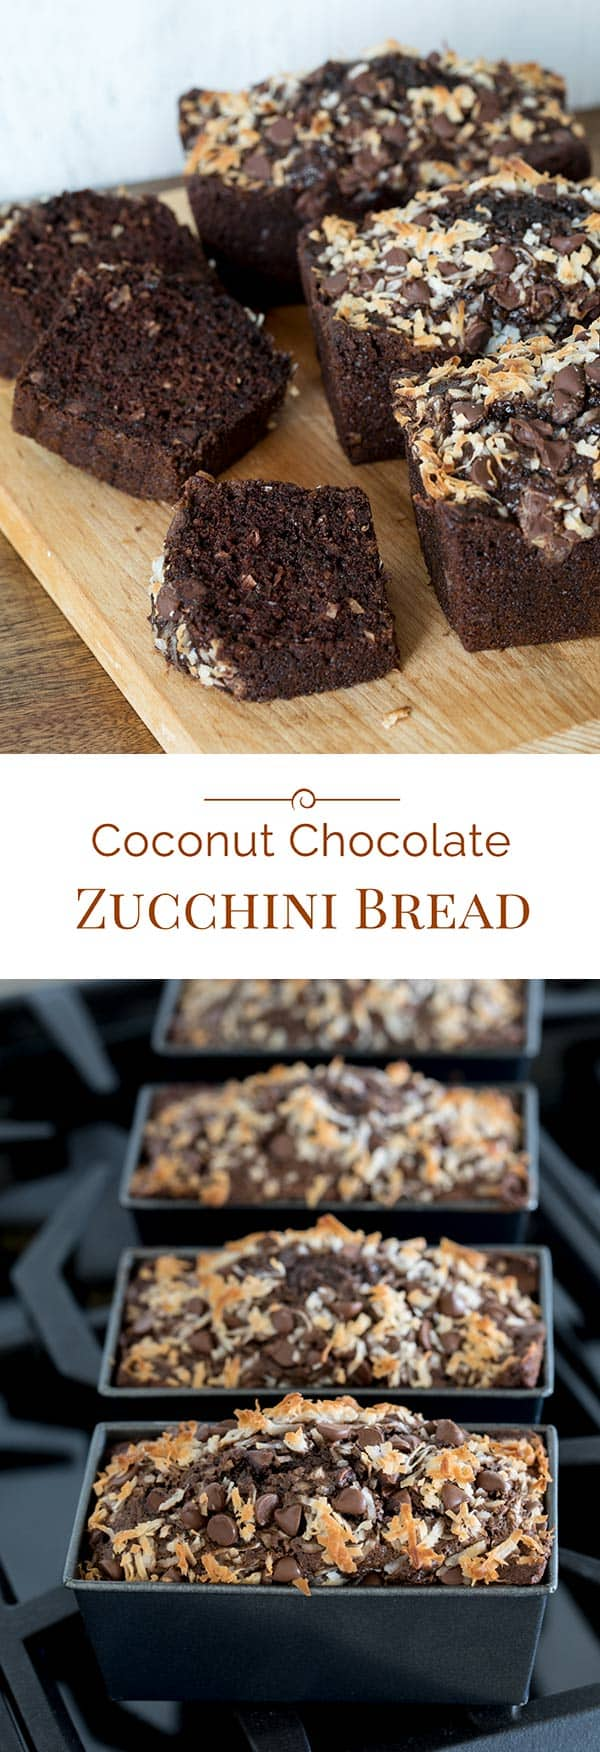 This Coconut Chocolate Zucchini Bread studded with chocolate chips is so rich, moist and delicious no one will ever know that the secret ingredient is zucchini.